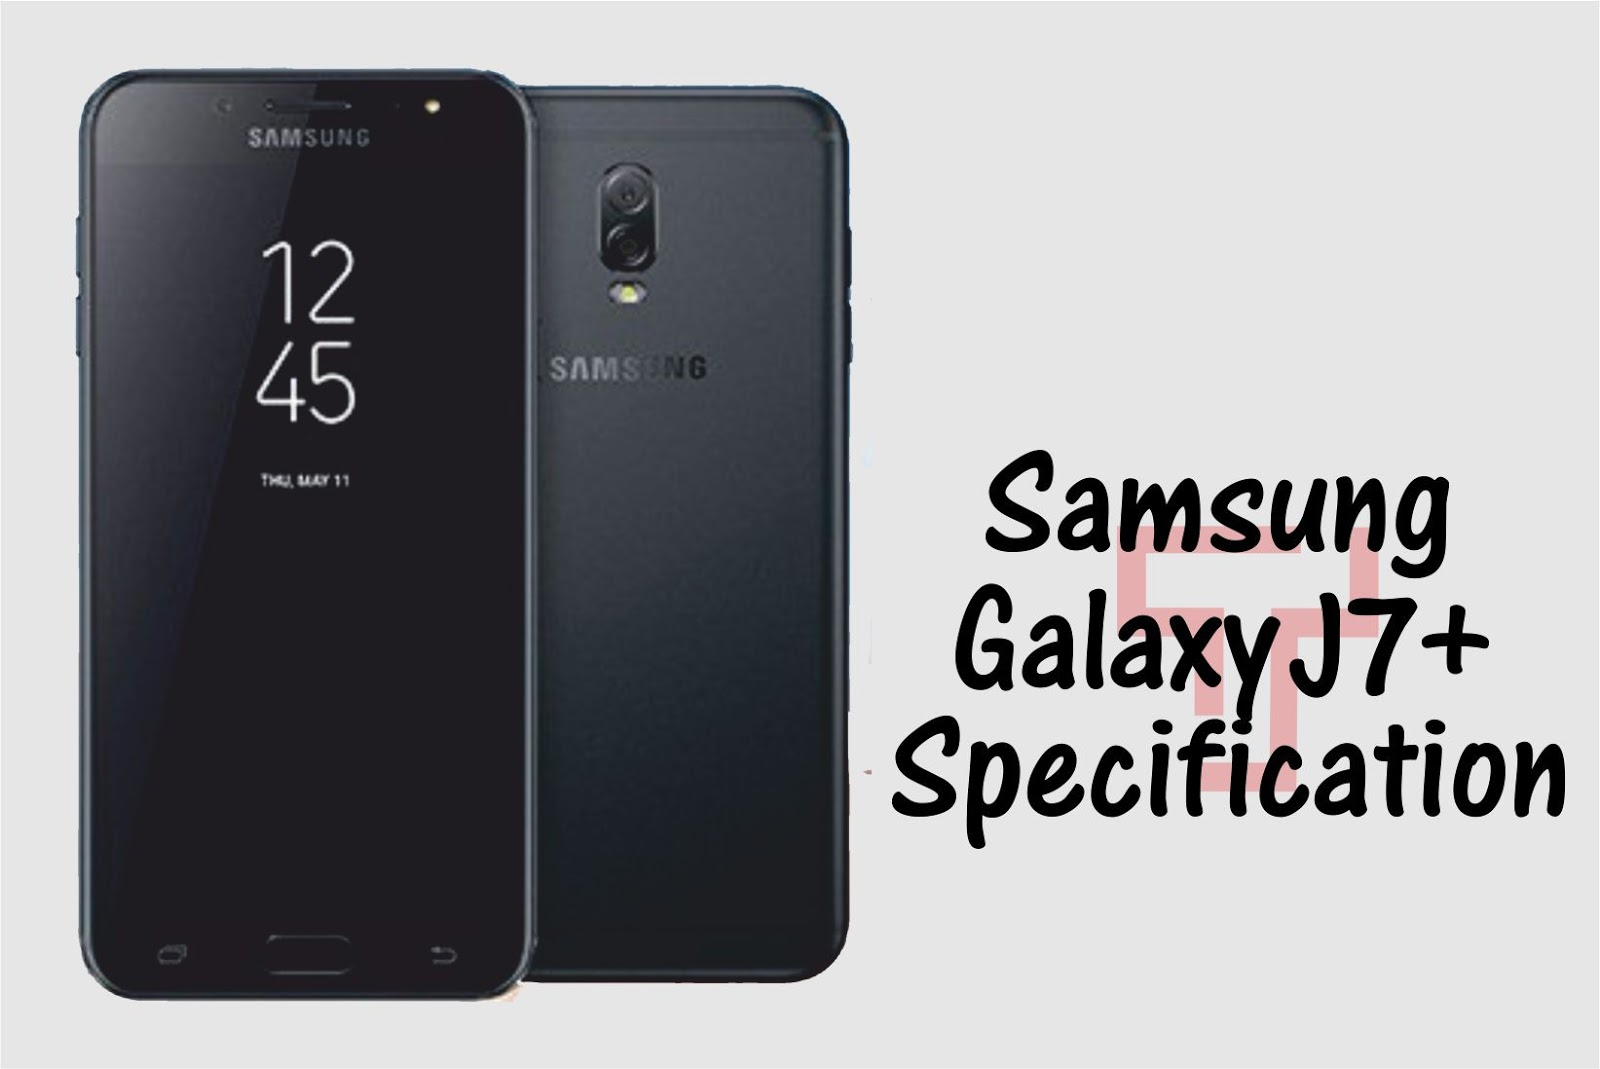 Samsung-galaxy-j7-plus-specification